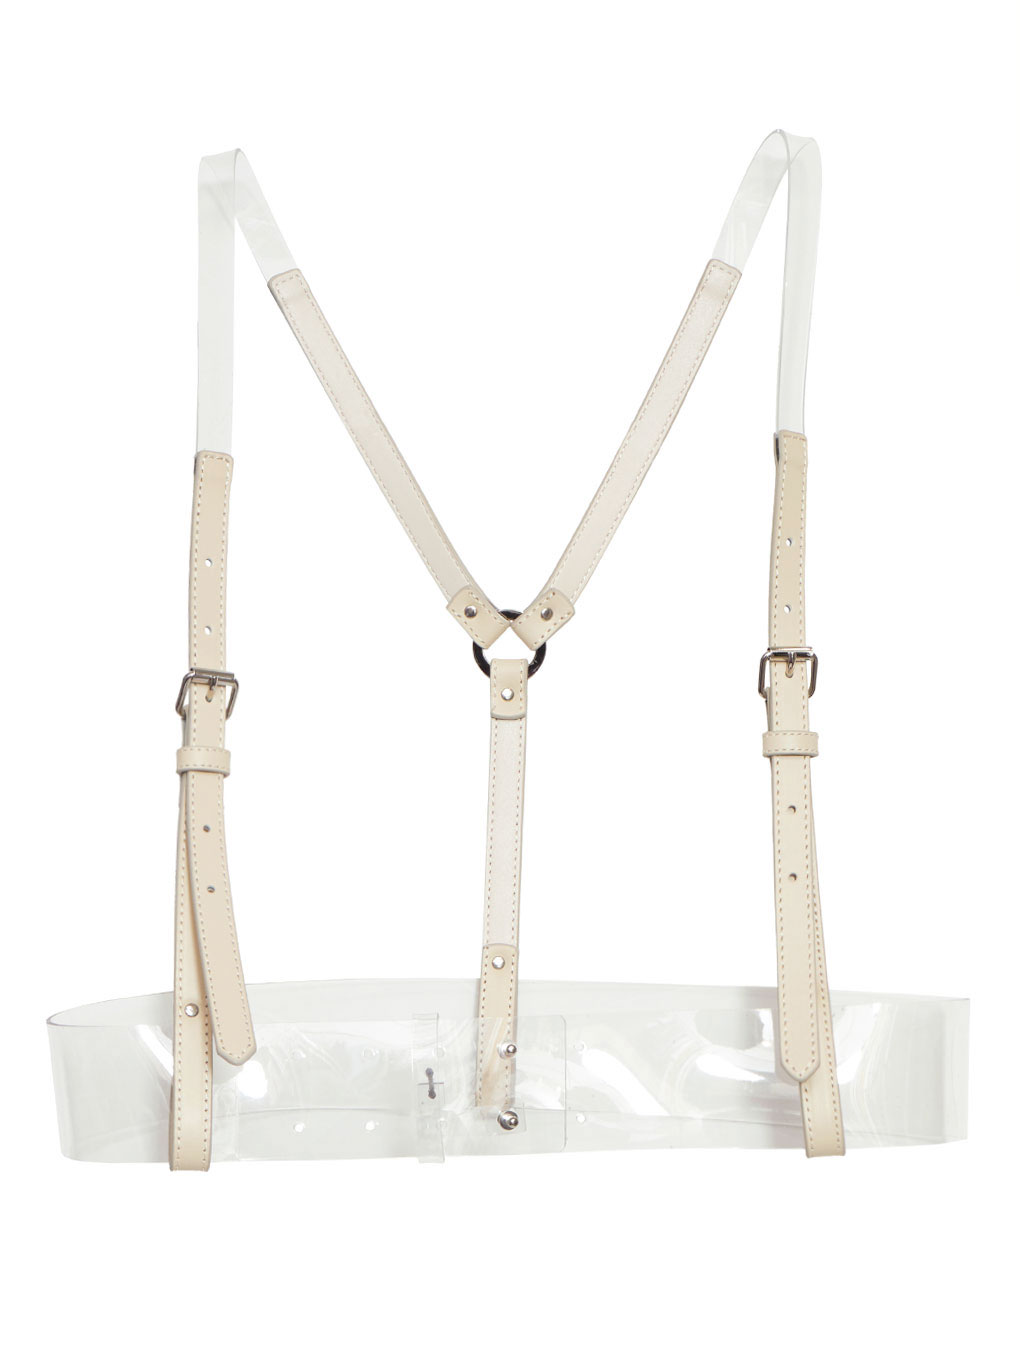 CLEAR SLENDER BELT HARNESS